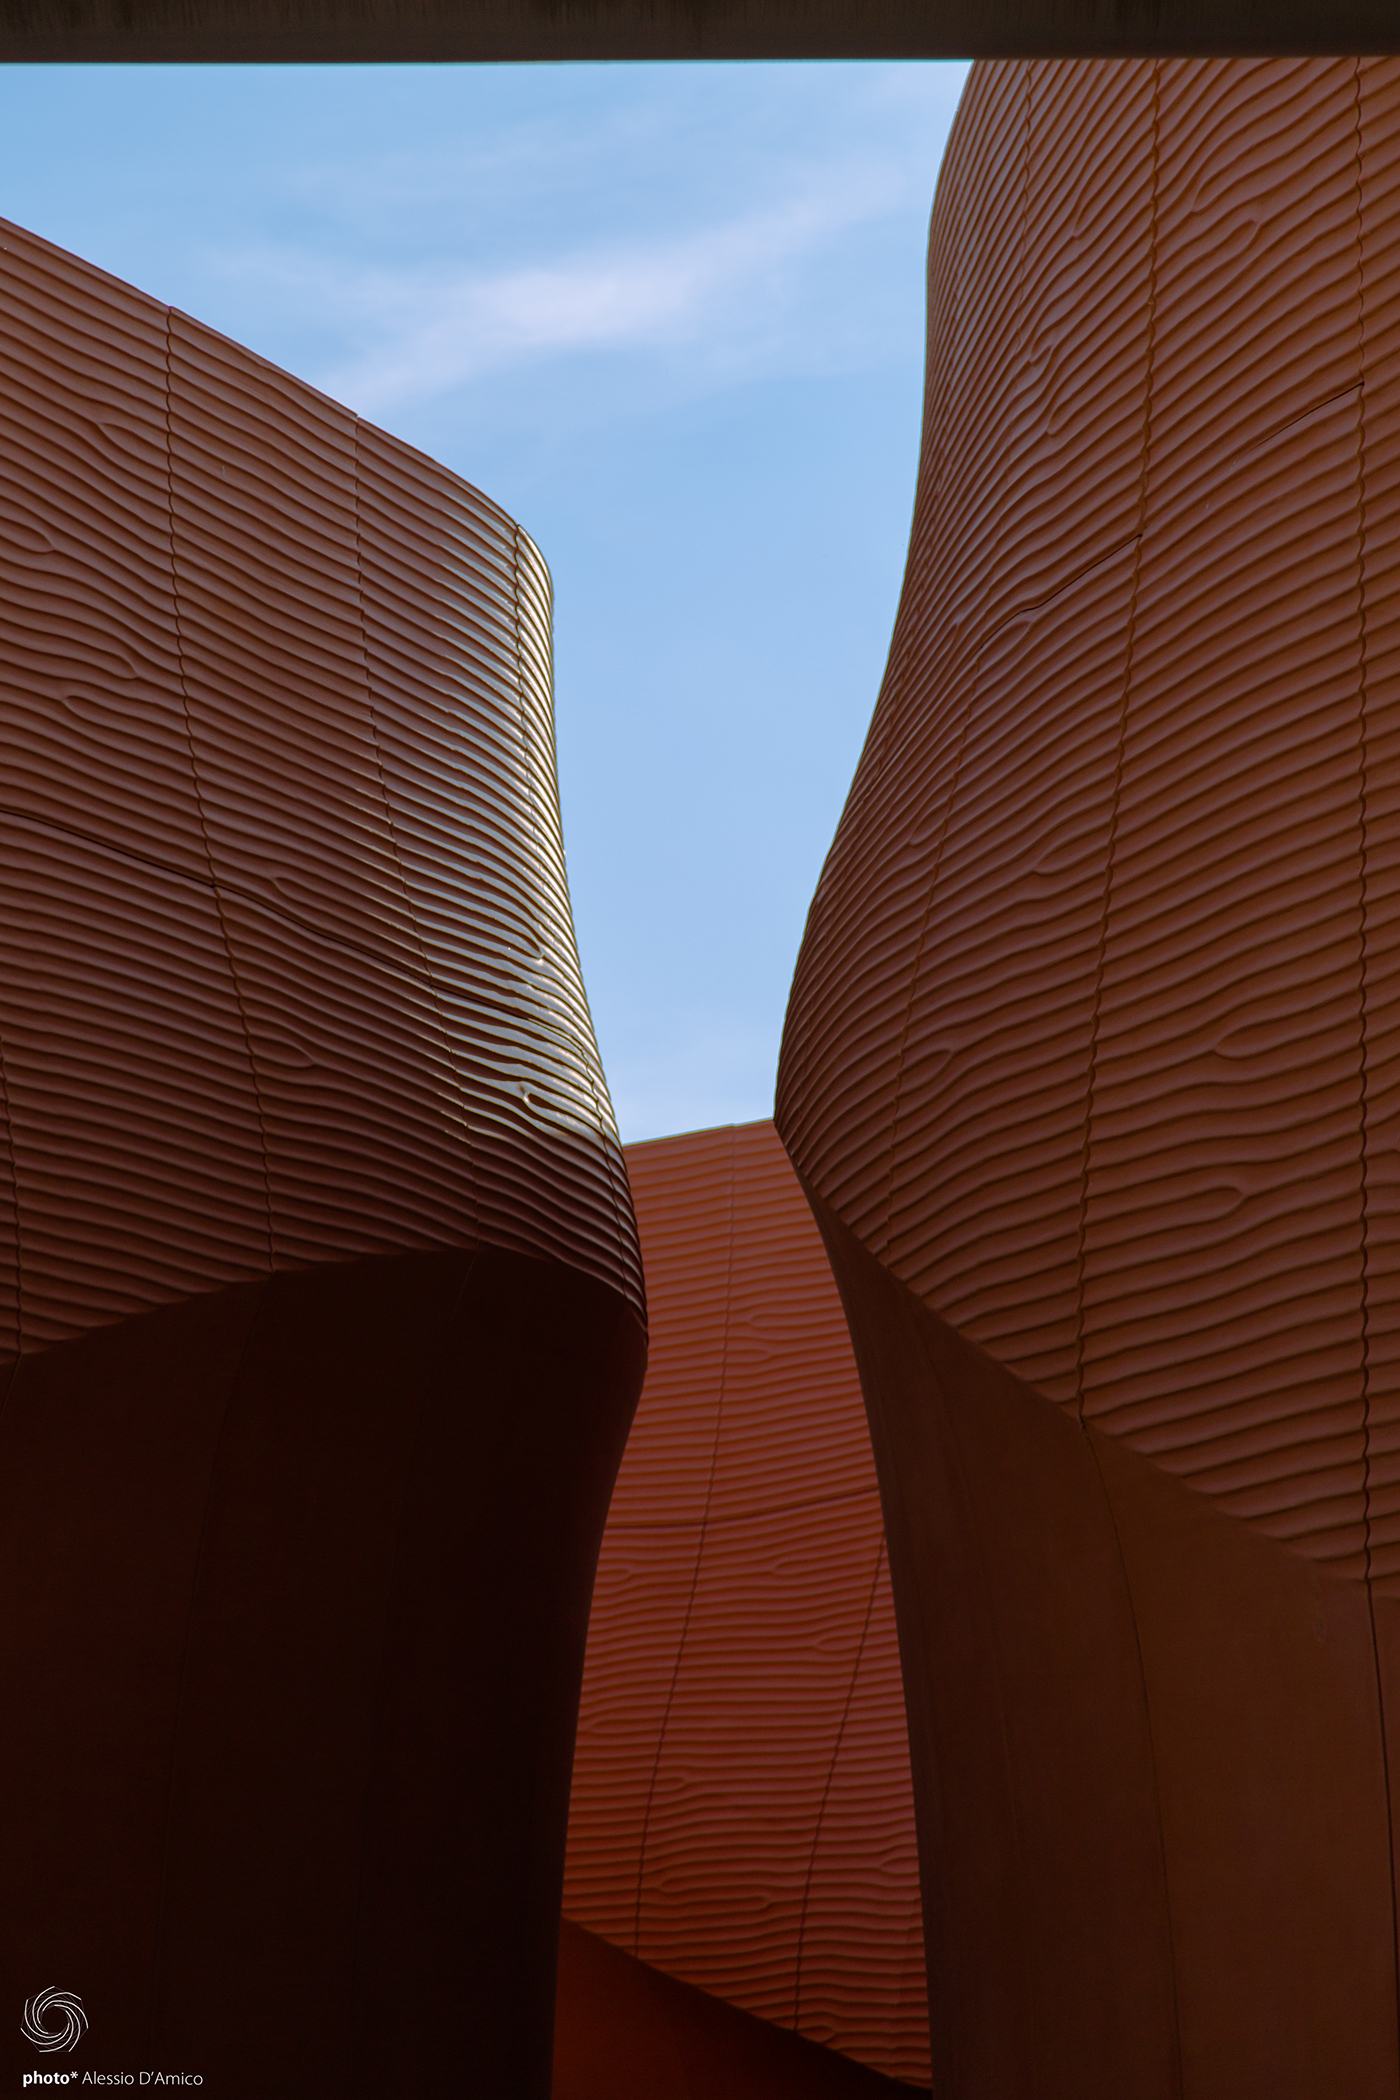 architecture expo milan Food  Love exposition culture Italy colors design